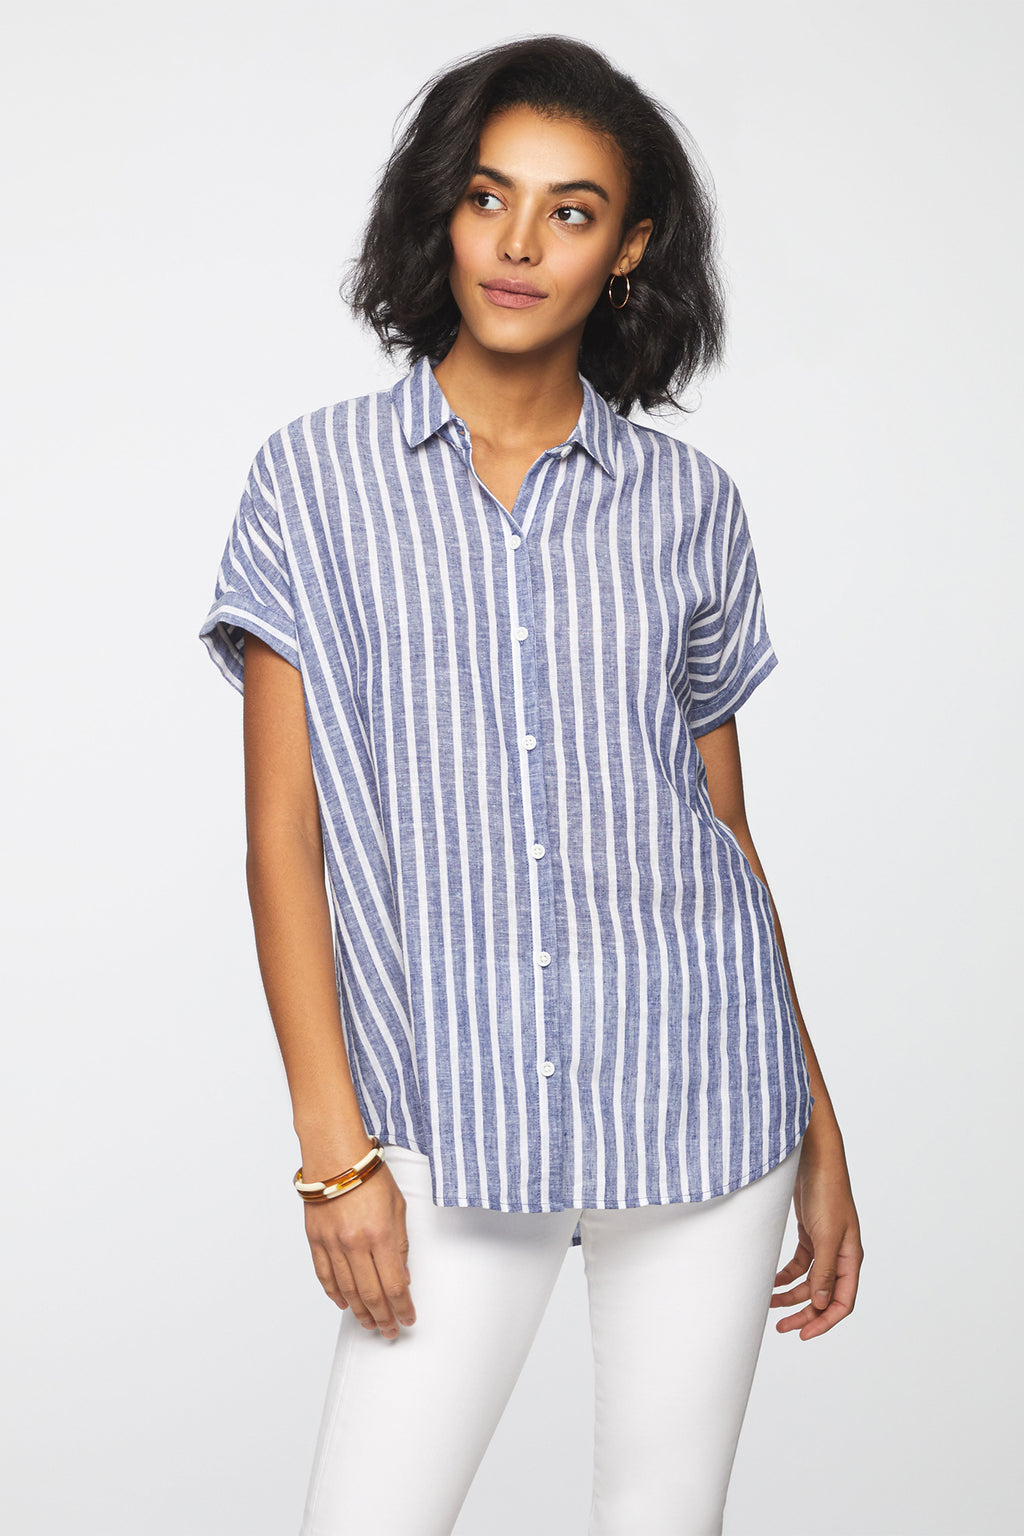 SPENCER SHIRT - FRENCH BLUE